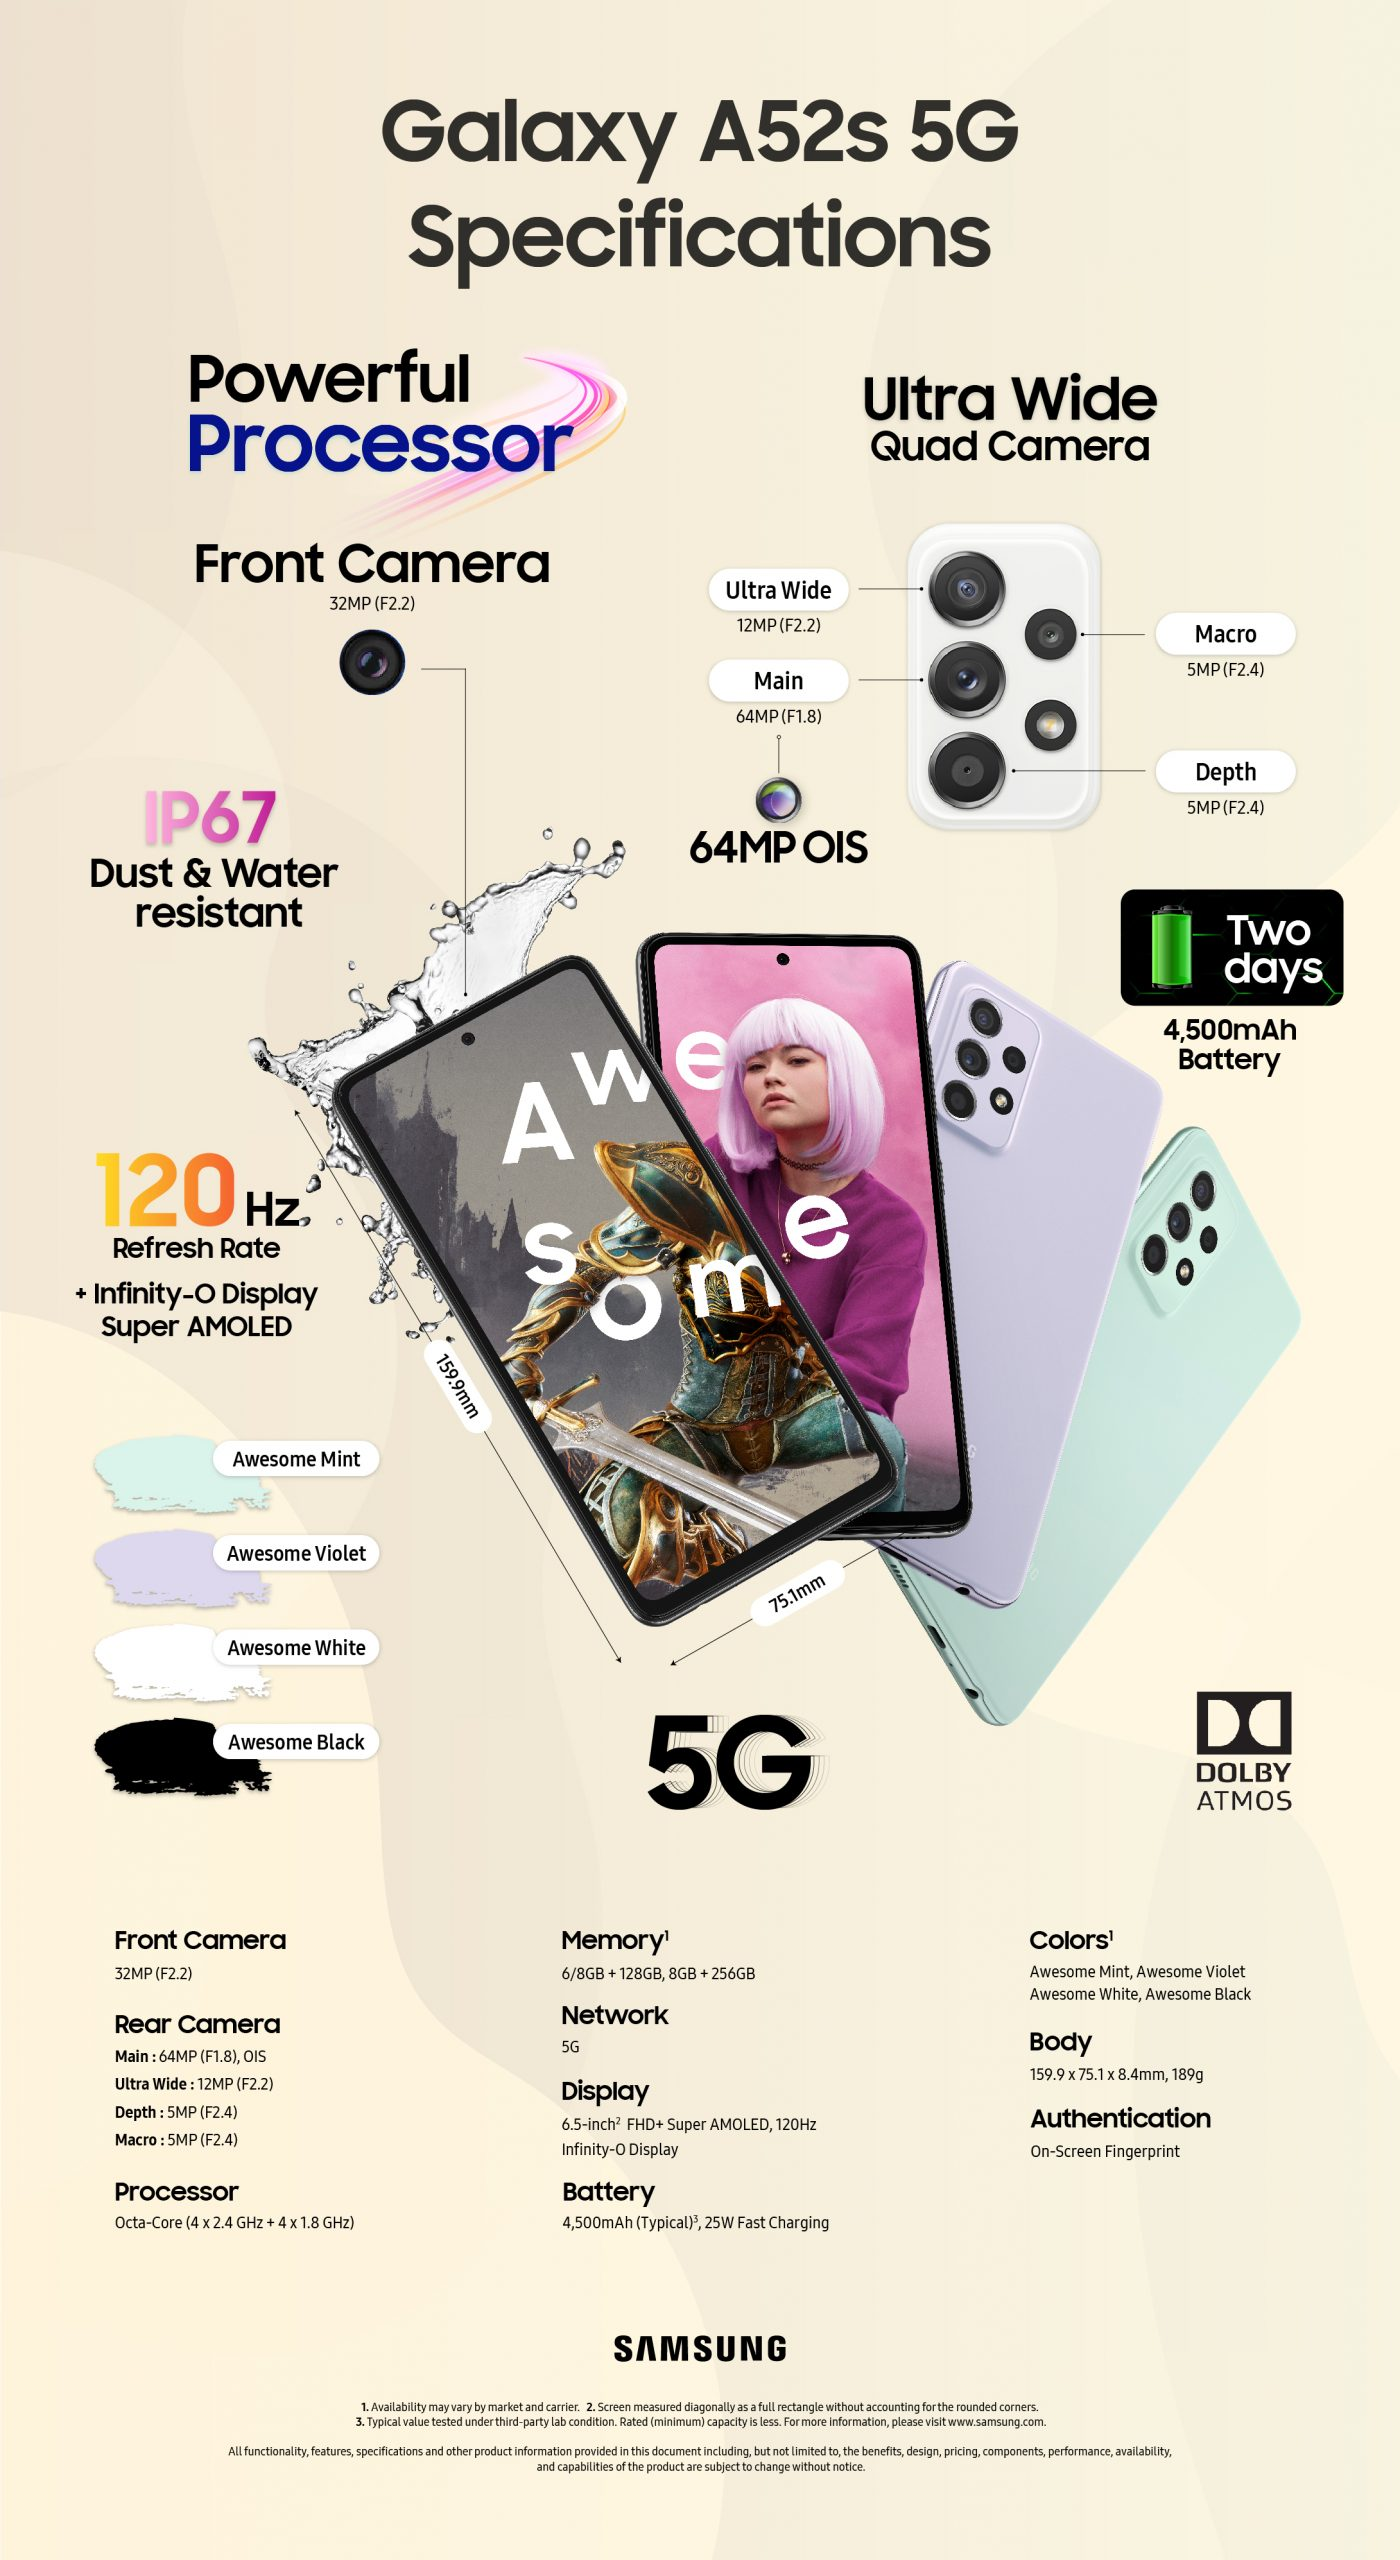 Samsung Galaxy A52s 5G specifications and key features